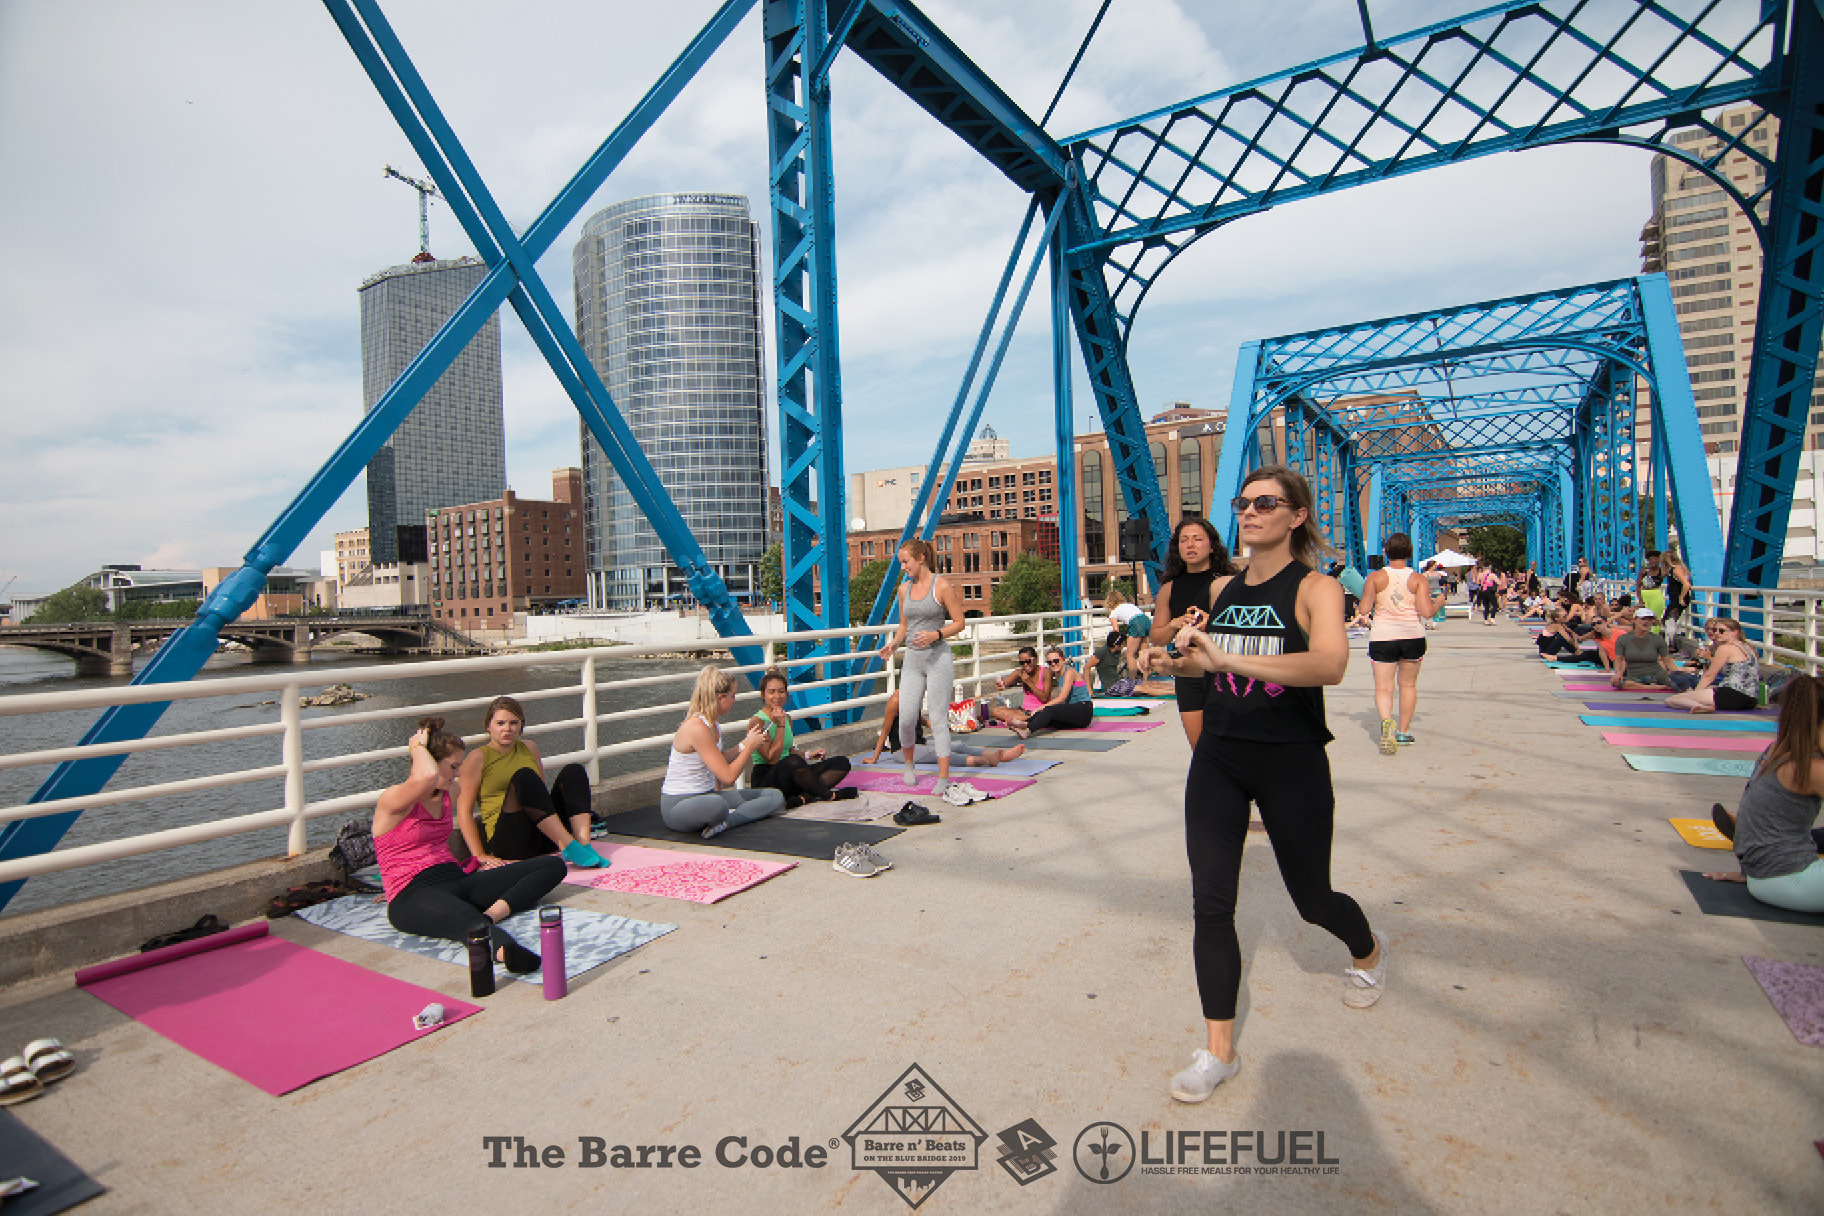 190805_the_barre_code_lifefuel_14.jpg